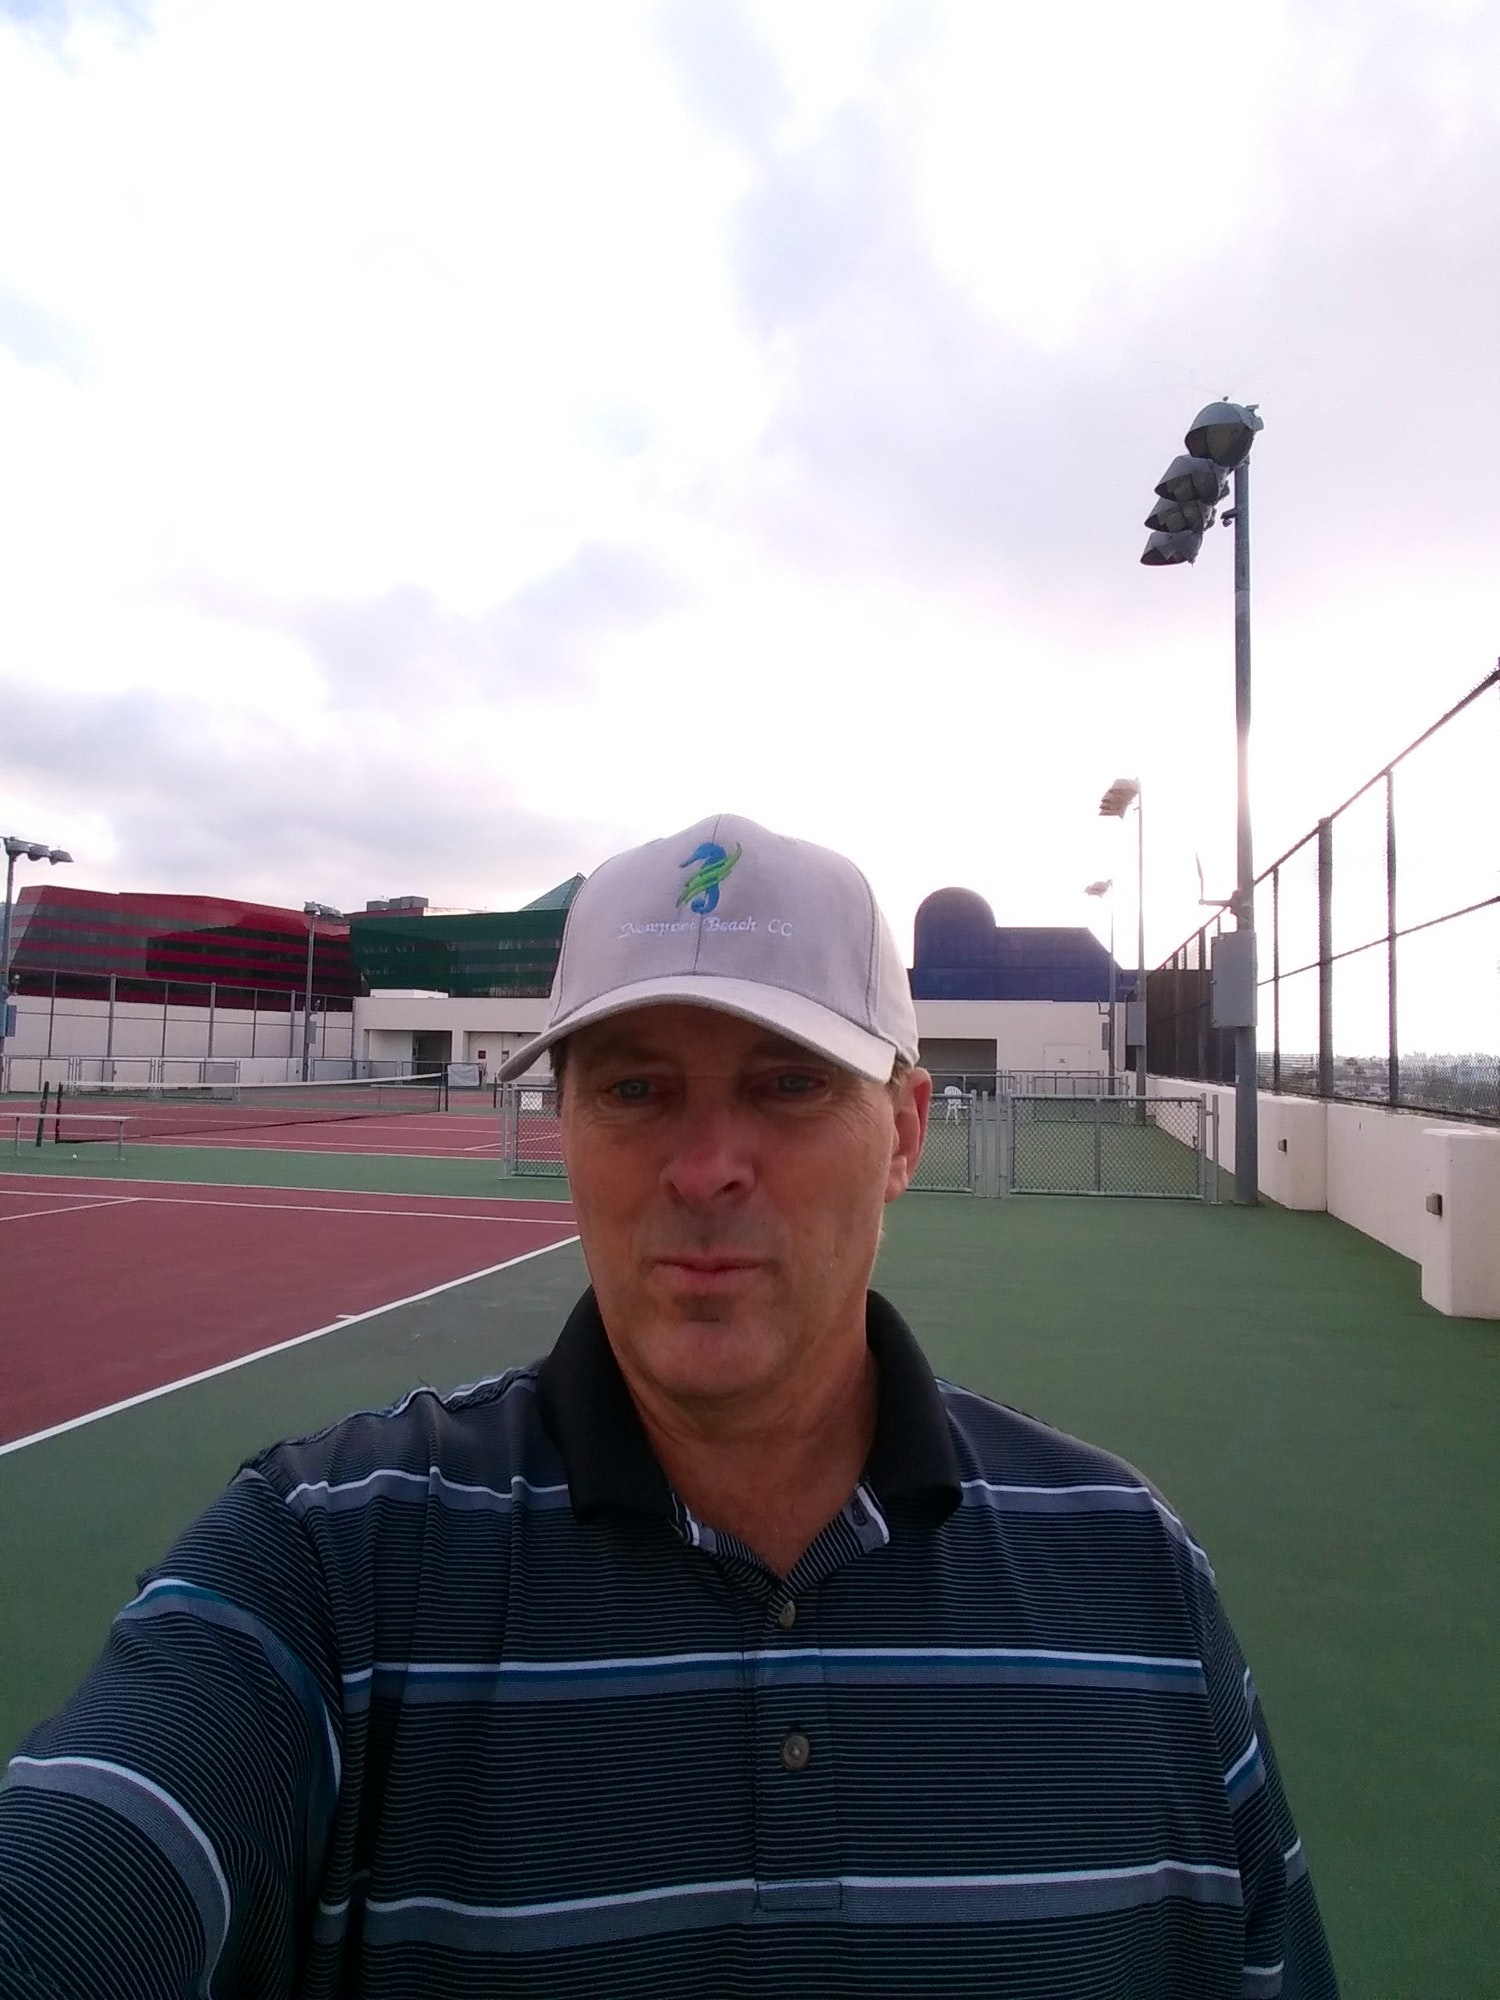 Todd S. teaches tennis lessons in Glendora, CA